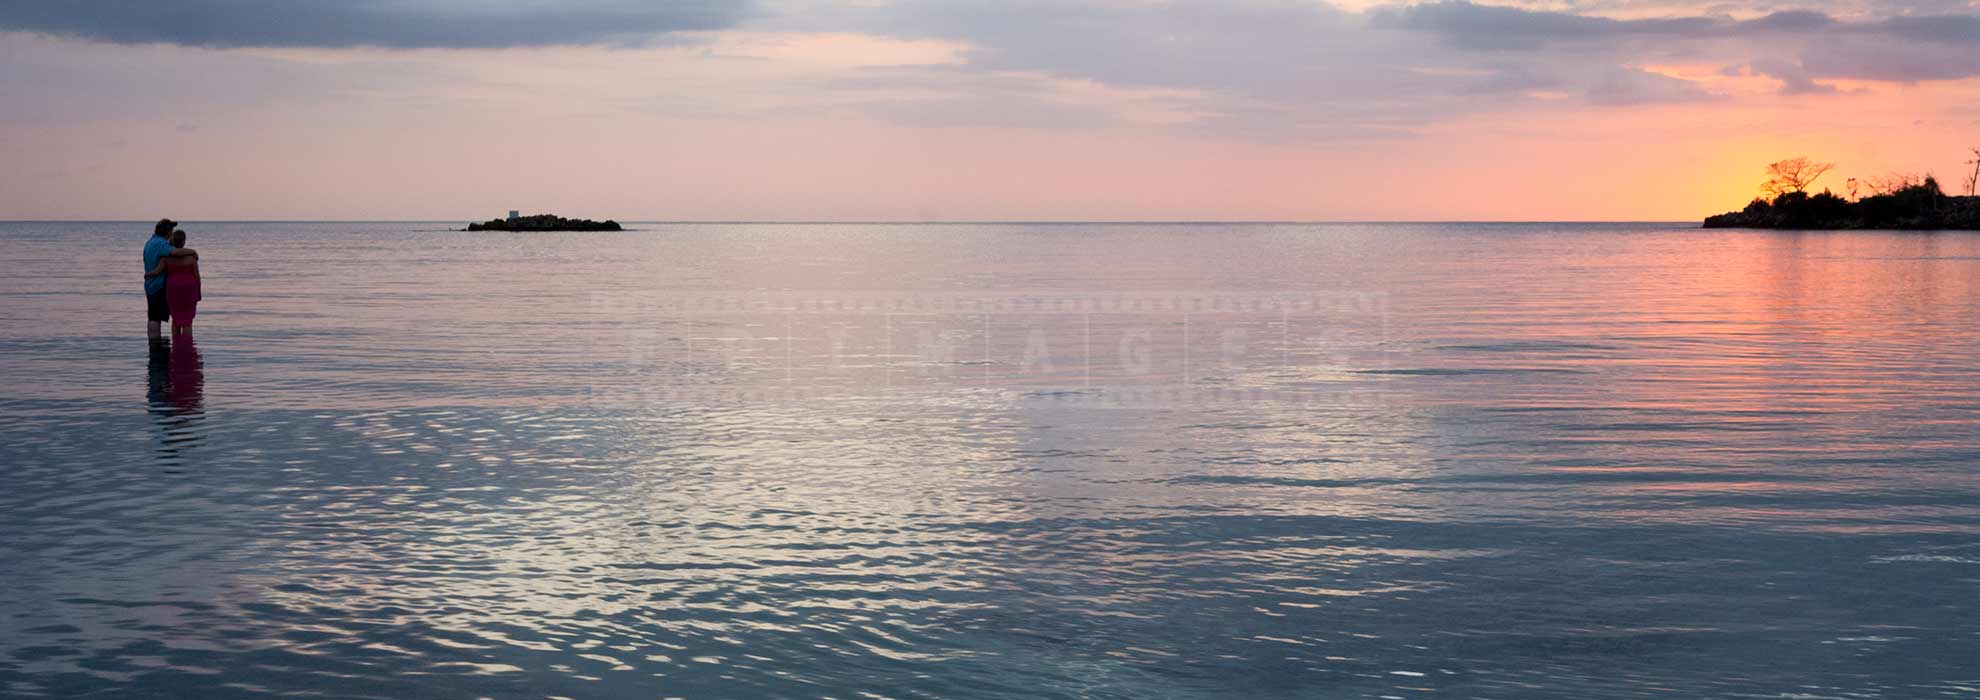 Couple watching gorgeous sunset over the Caribbean sea in Negril Jamaica